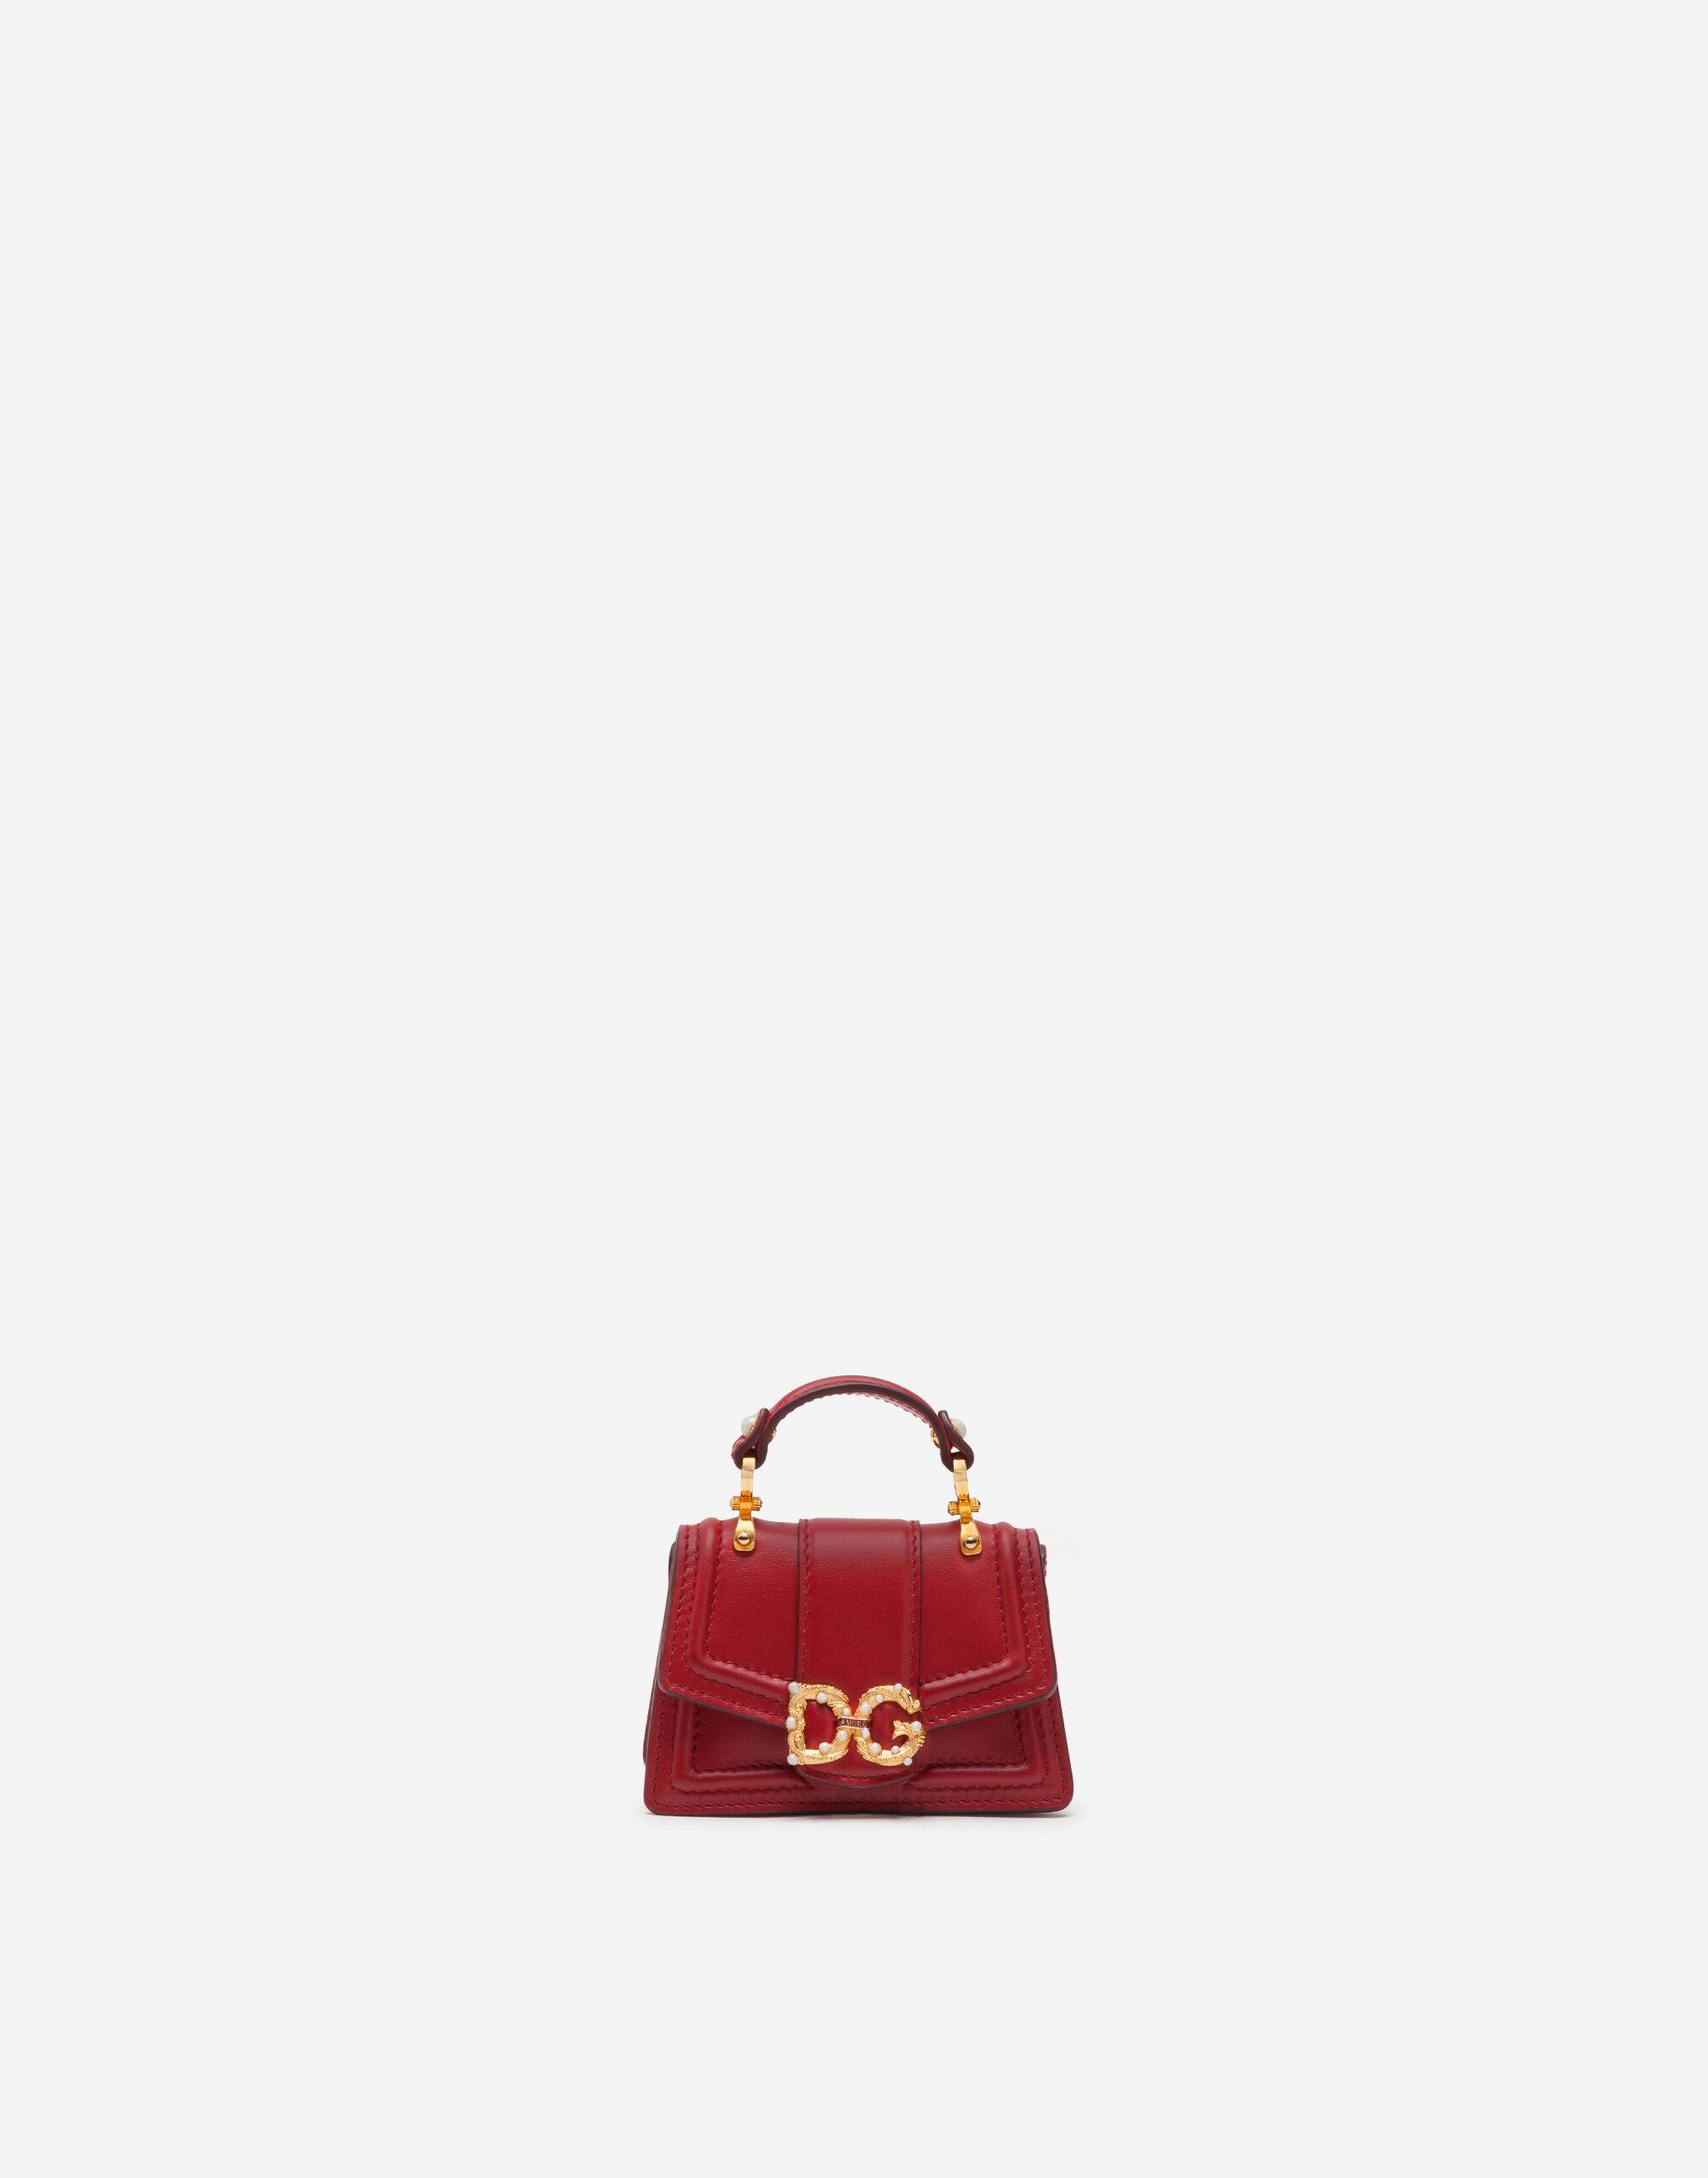 DG Amore micro bag in smooth calfskin